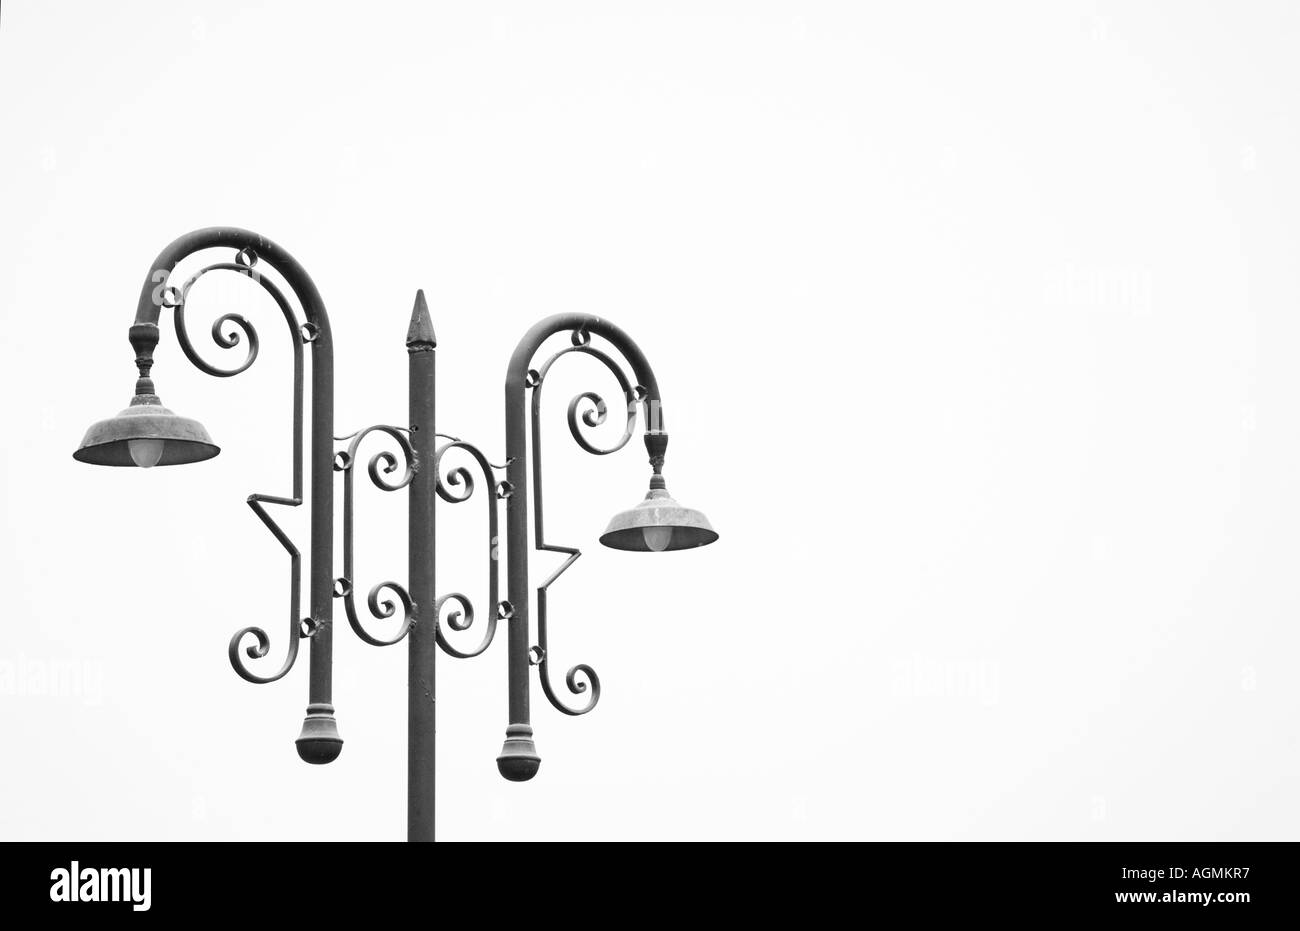 Decorative Street Light High Resolution Stock Photography And Images Alamy